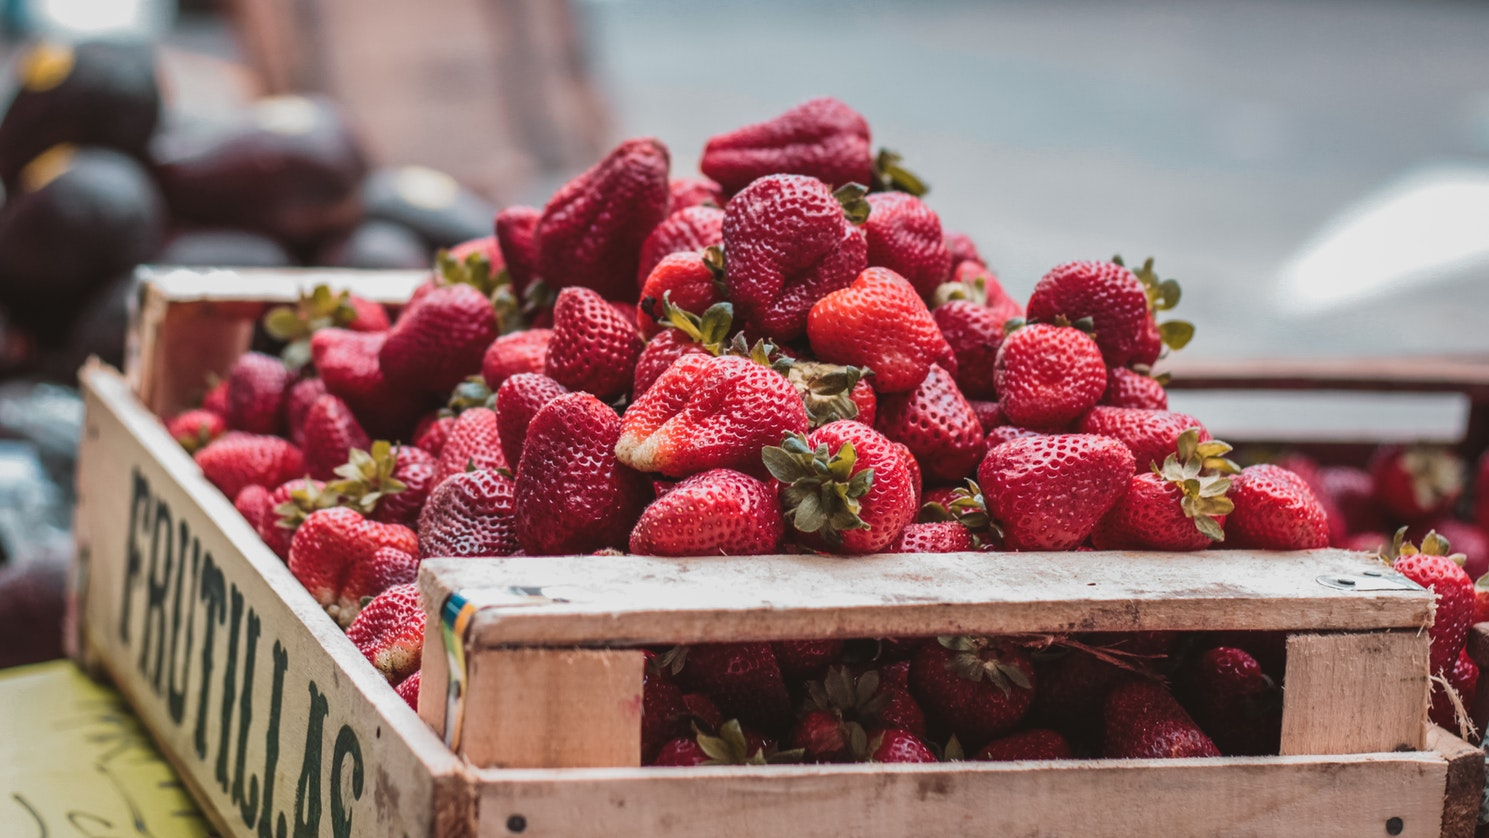 Strawberries at the farmers market; they are some of the best foods for seniors.